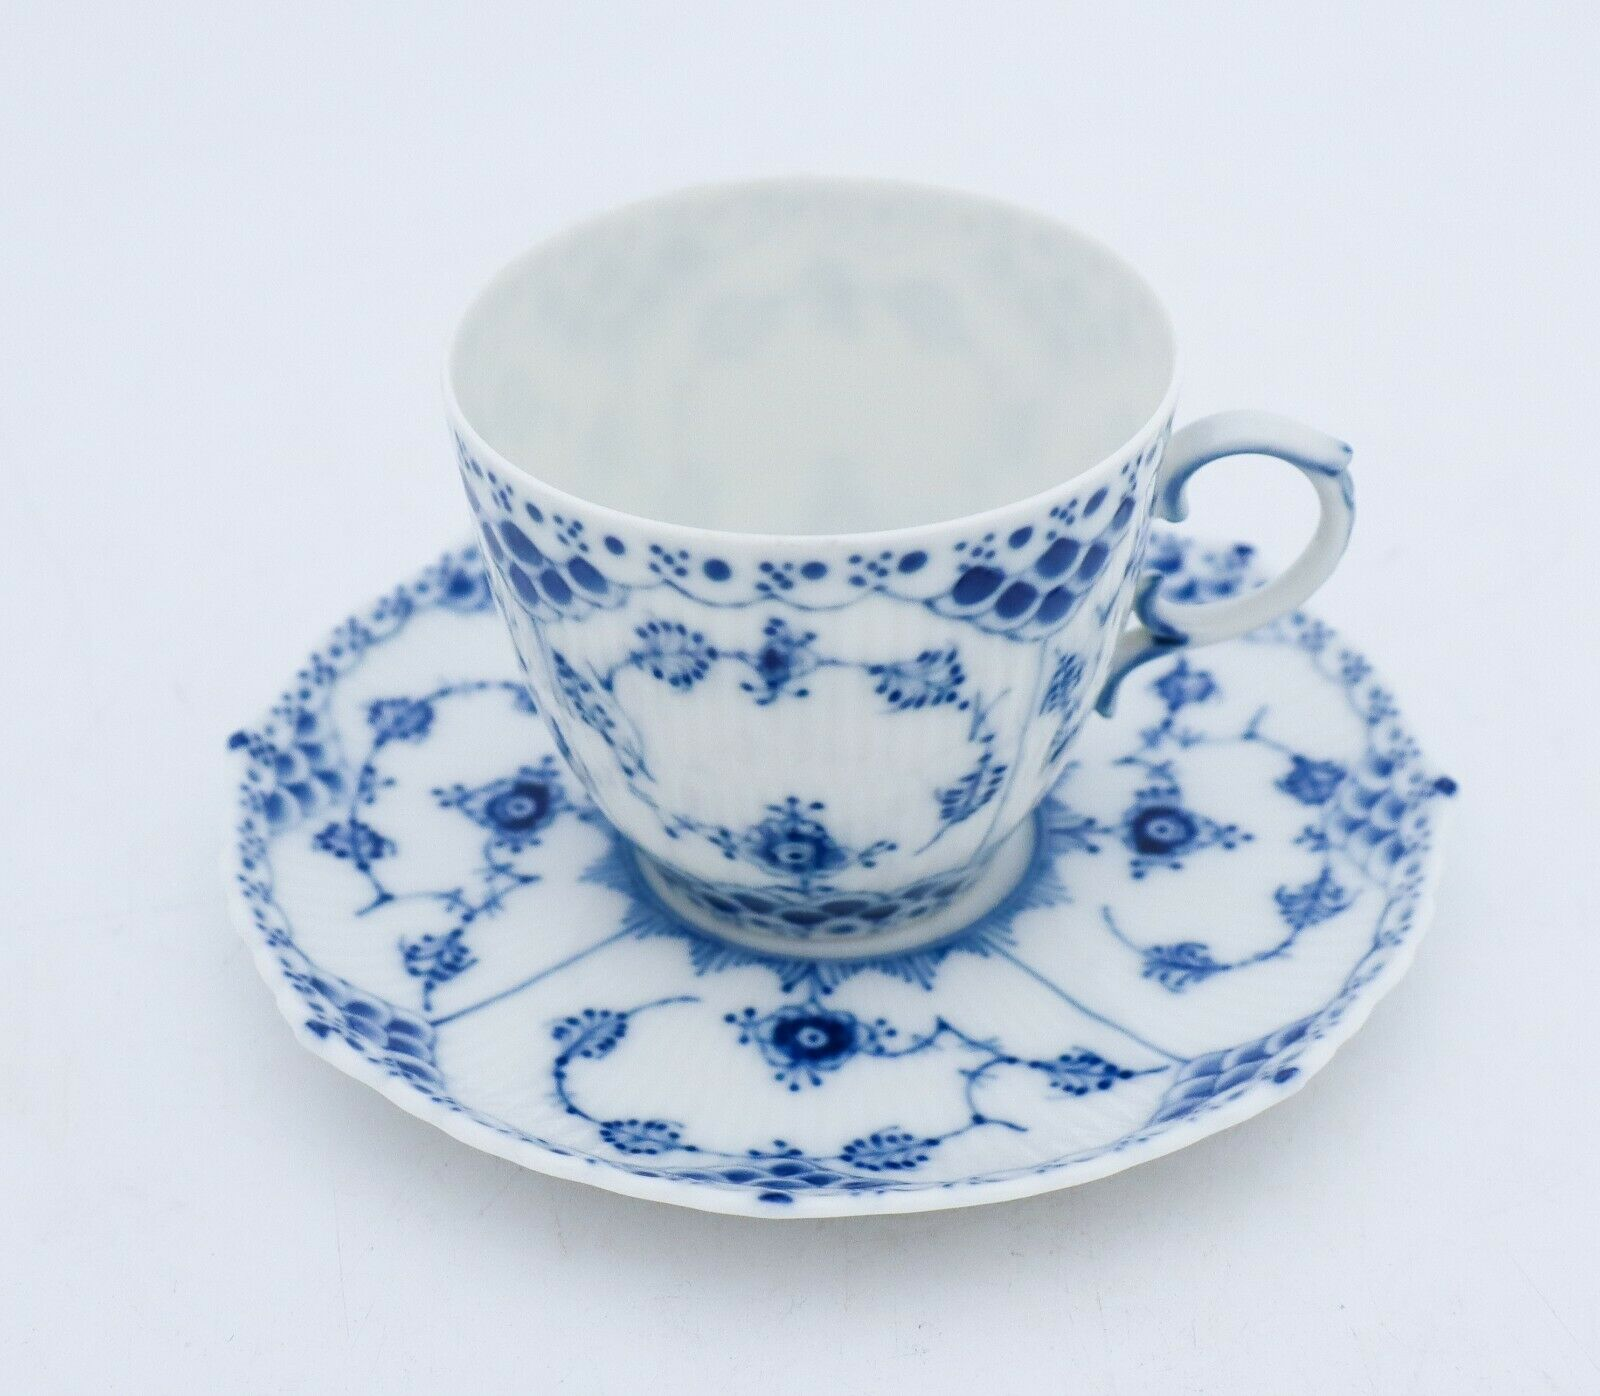 Image 6 - 12 Cups & Saucers #1035 - Blue Fluted Royal Copenhagen Full Lace - 1:st Quality